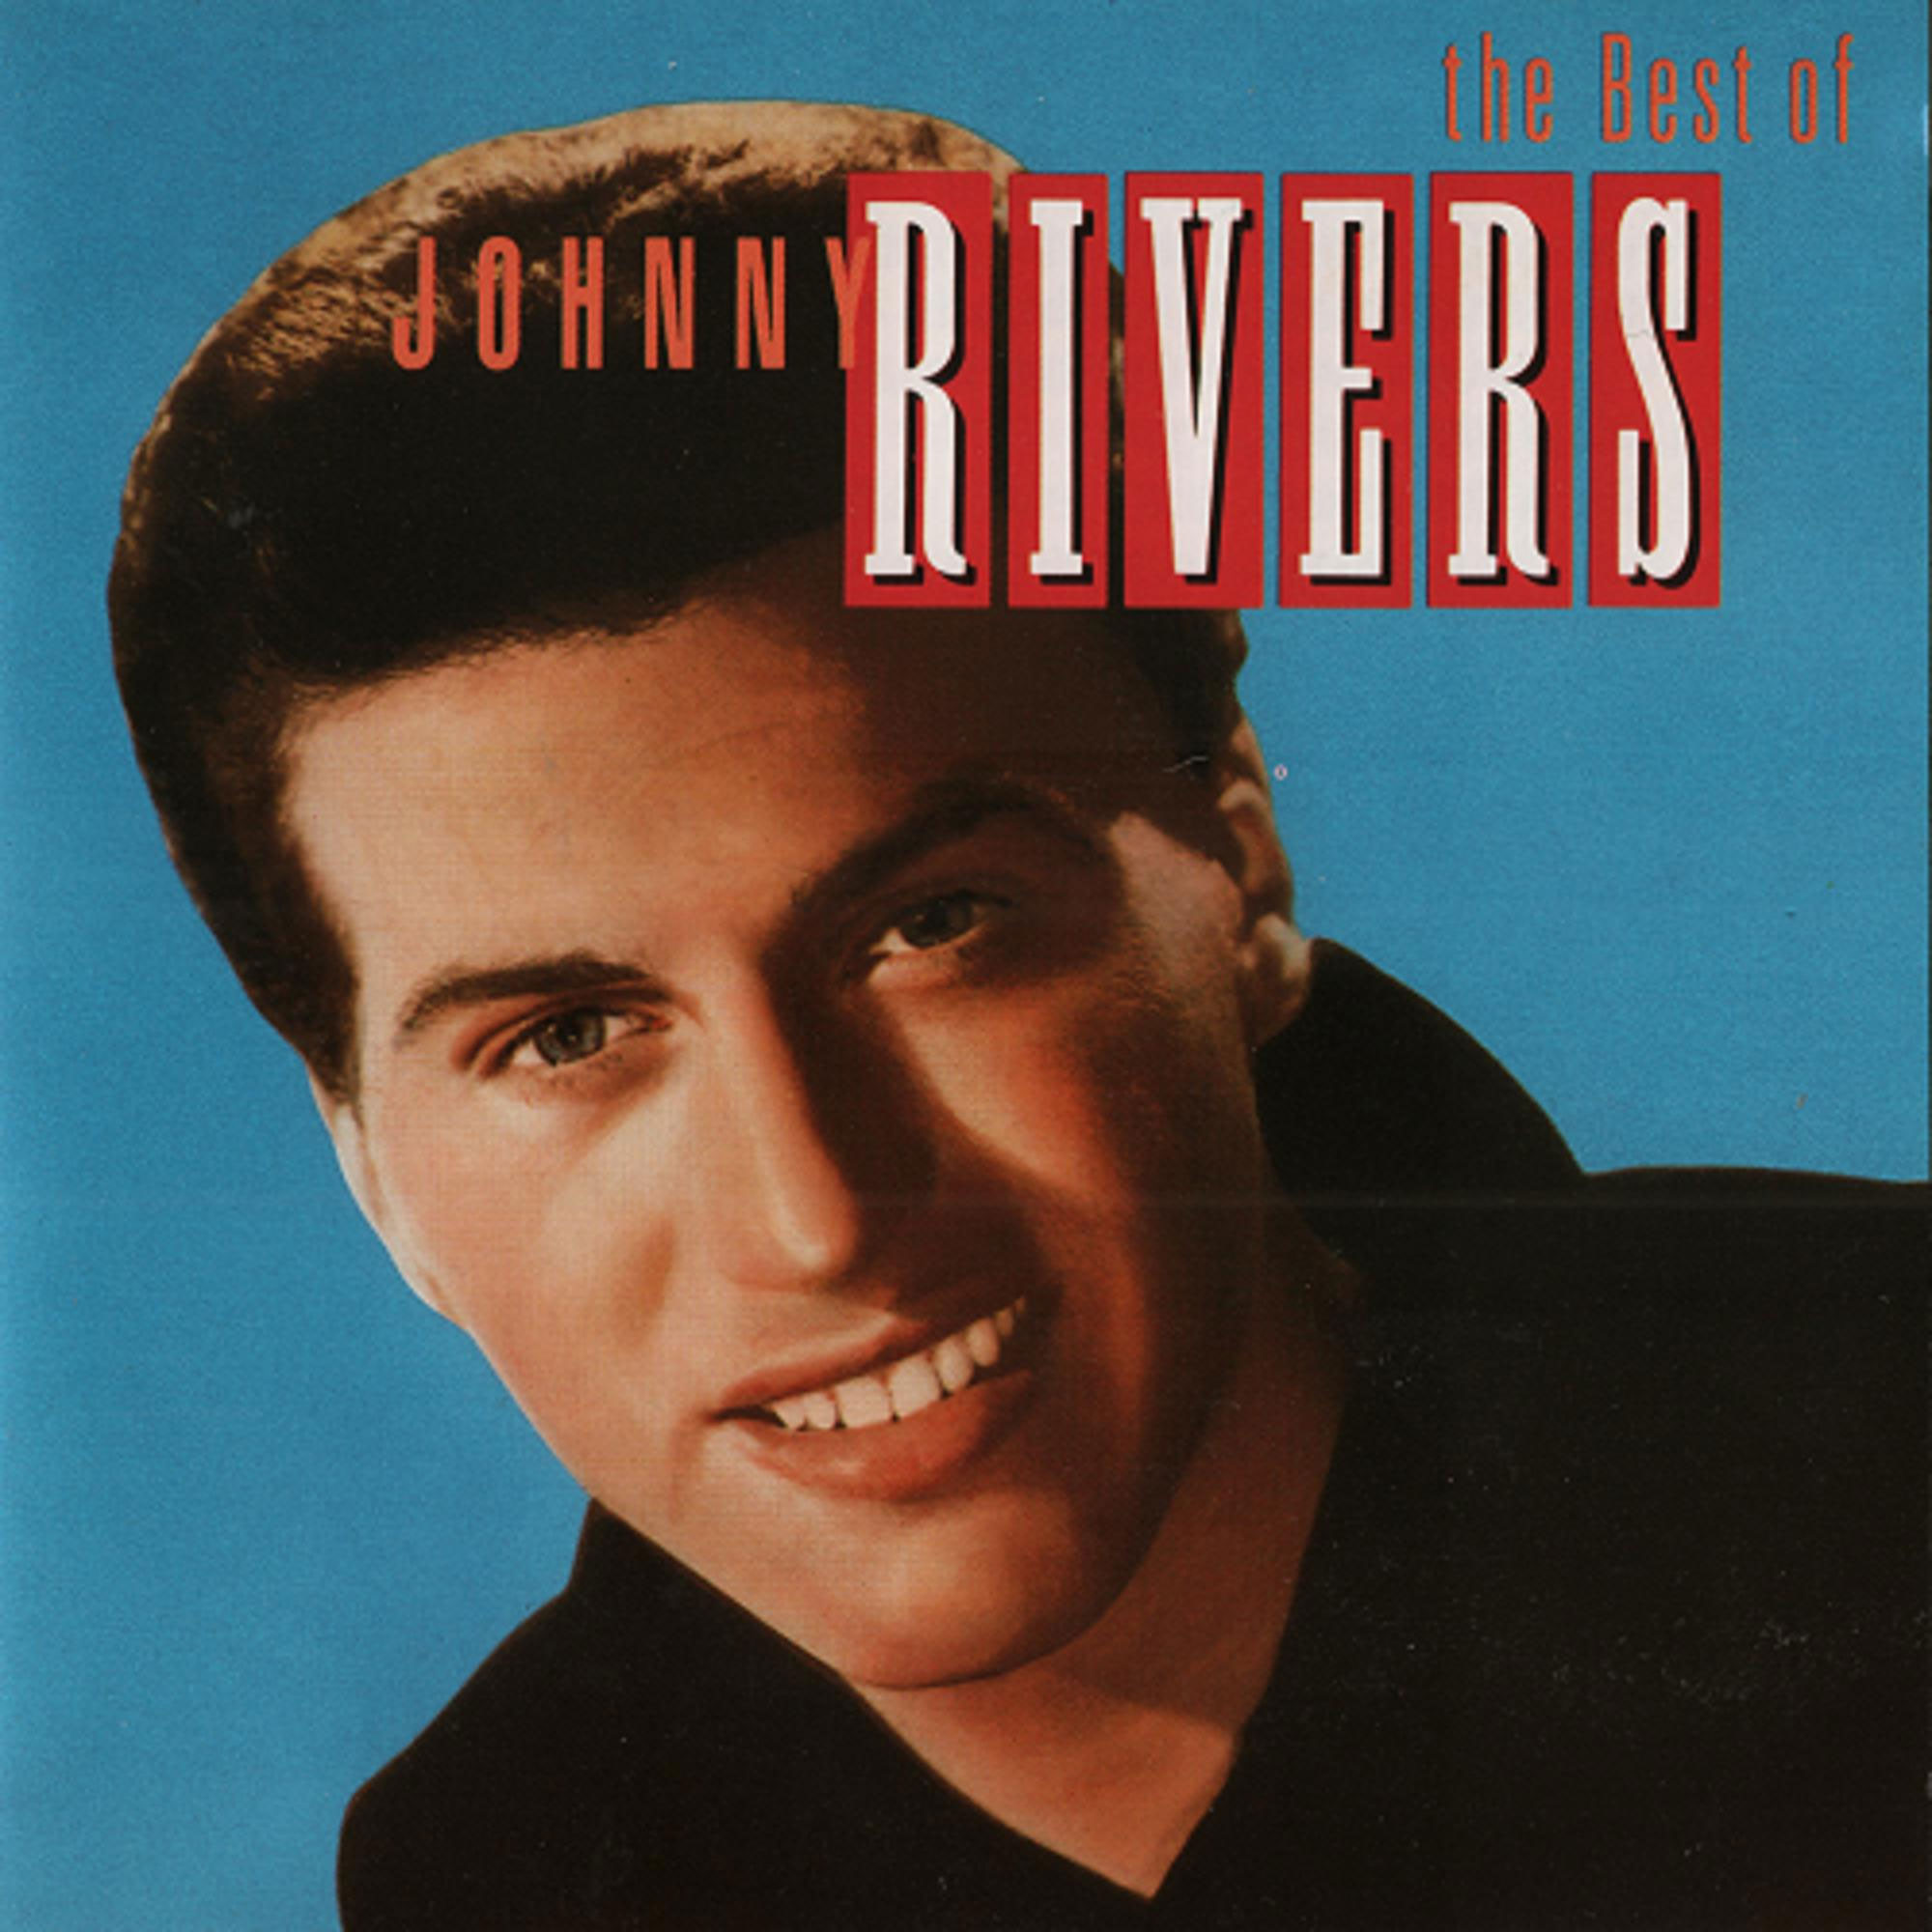 Johnny Rivers The Best of Johnny Rivers (Limited Edition) 180g LP